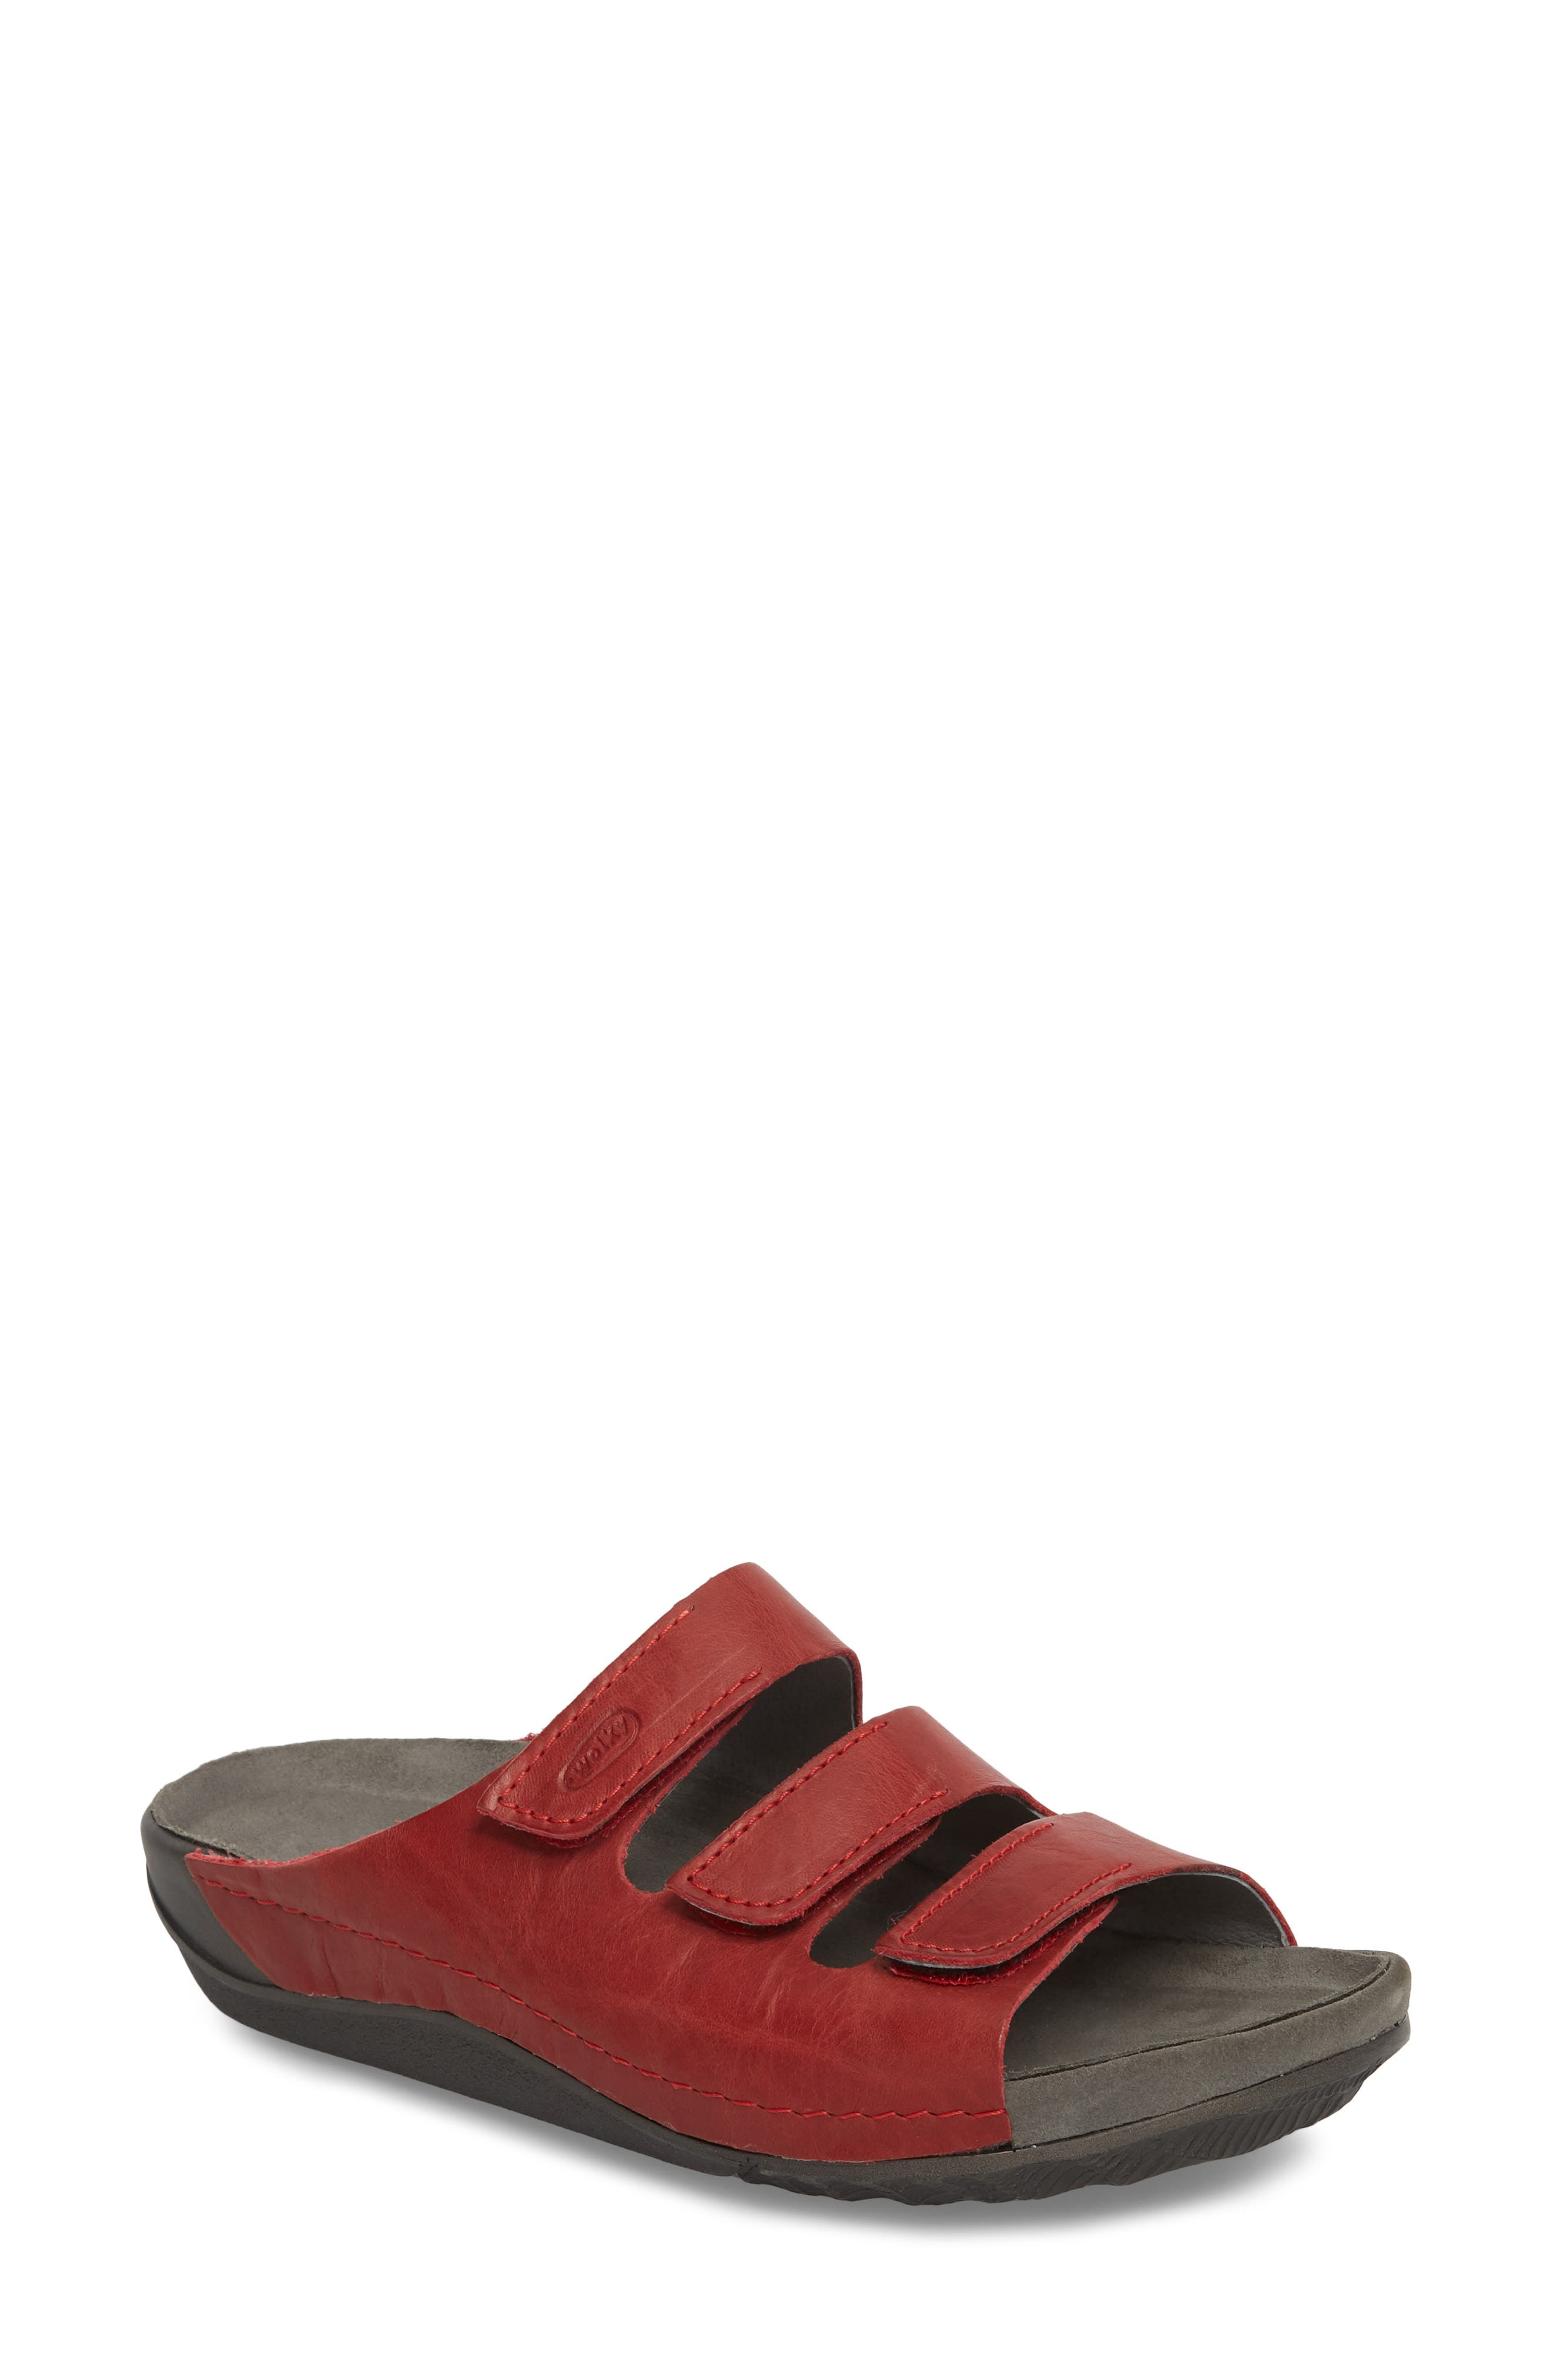 Nomad Slide Sandal,                         Main,                         color, Red Leather